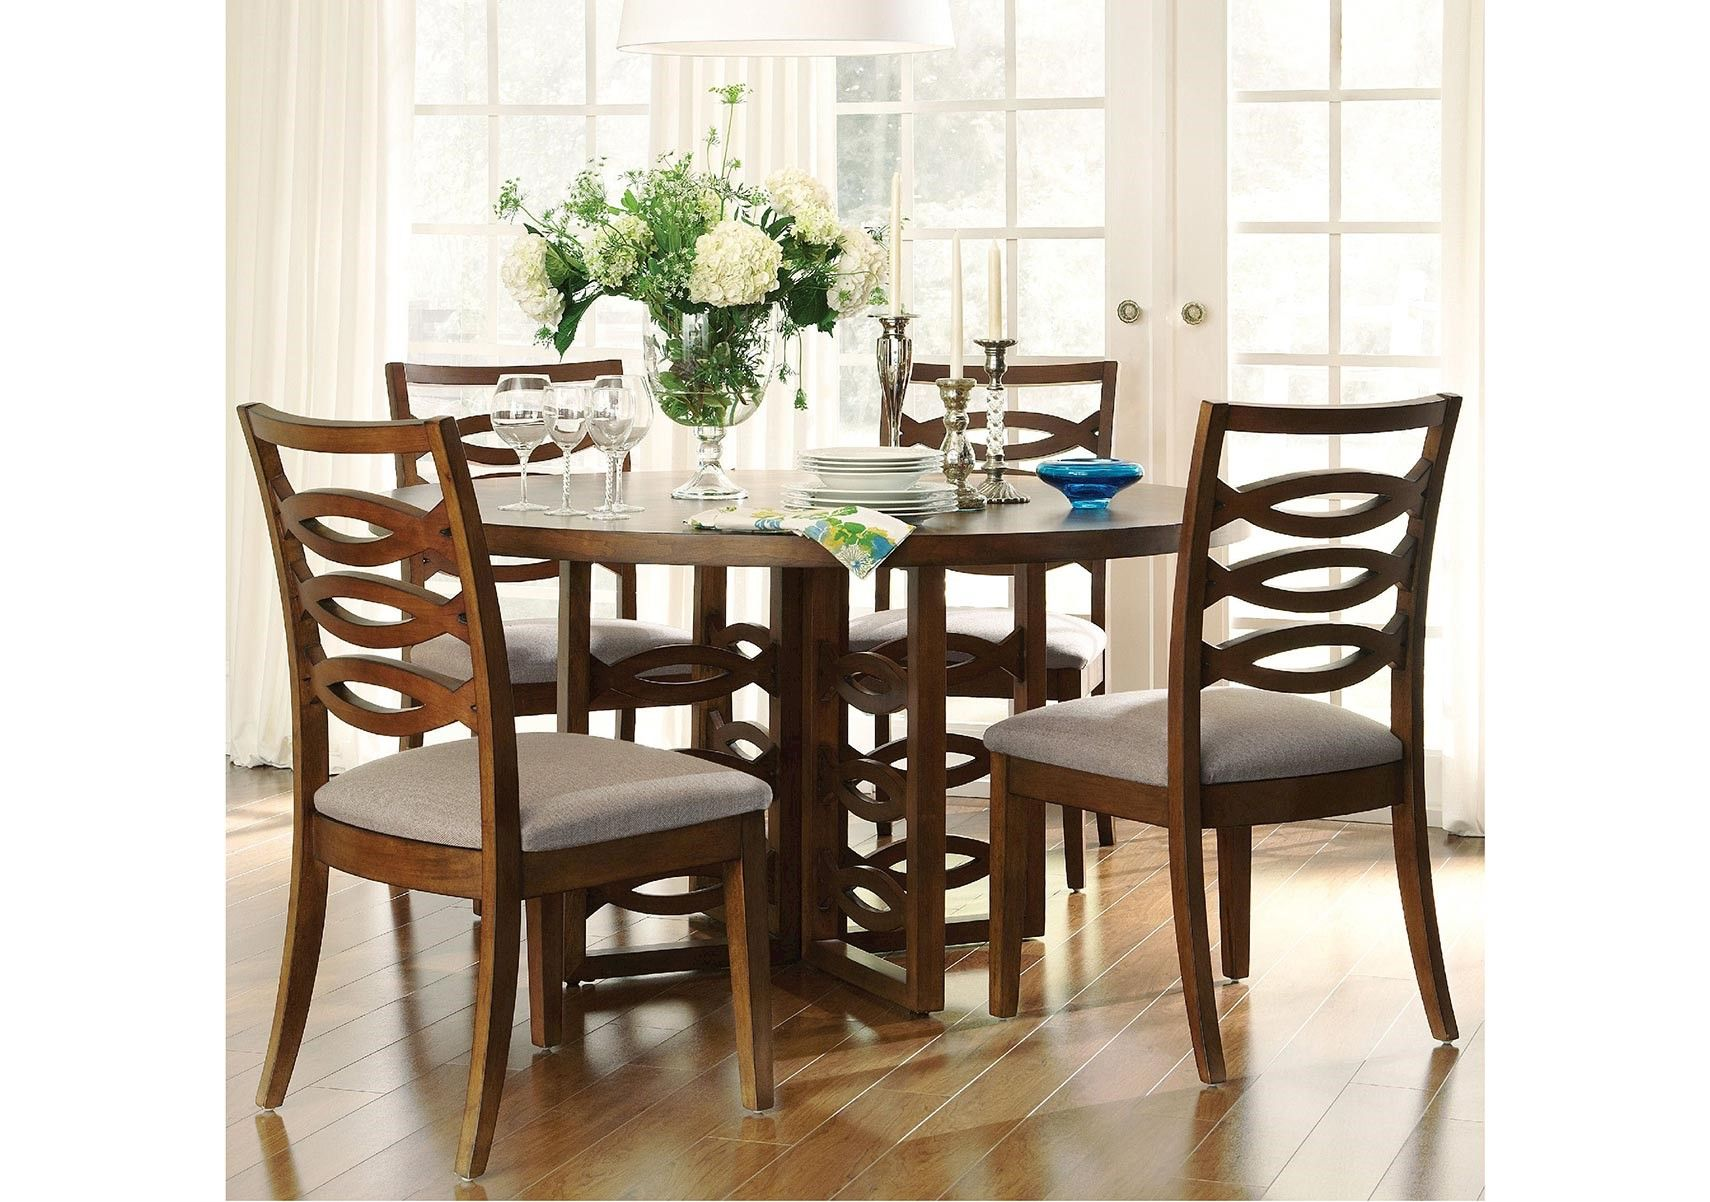 Lacks  Claire De Lune 8Pc Dining Roomful  Transitional Style Custom 8 Piece Dining Room Set Design Ideas